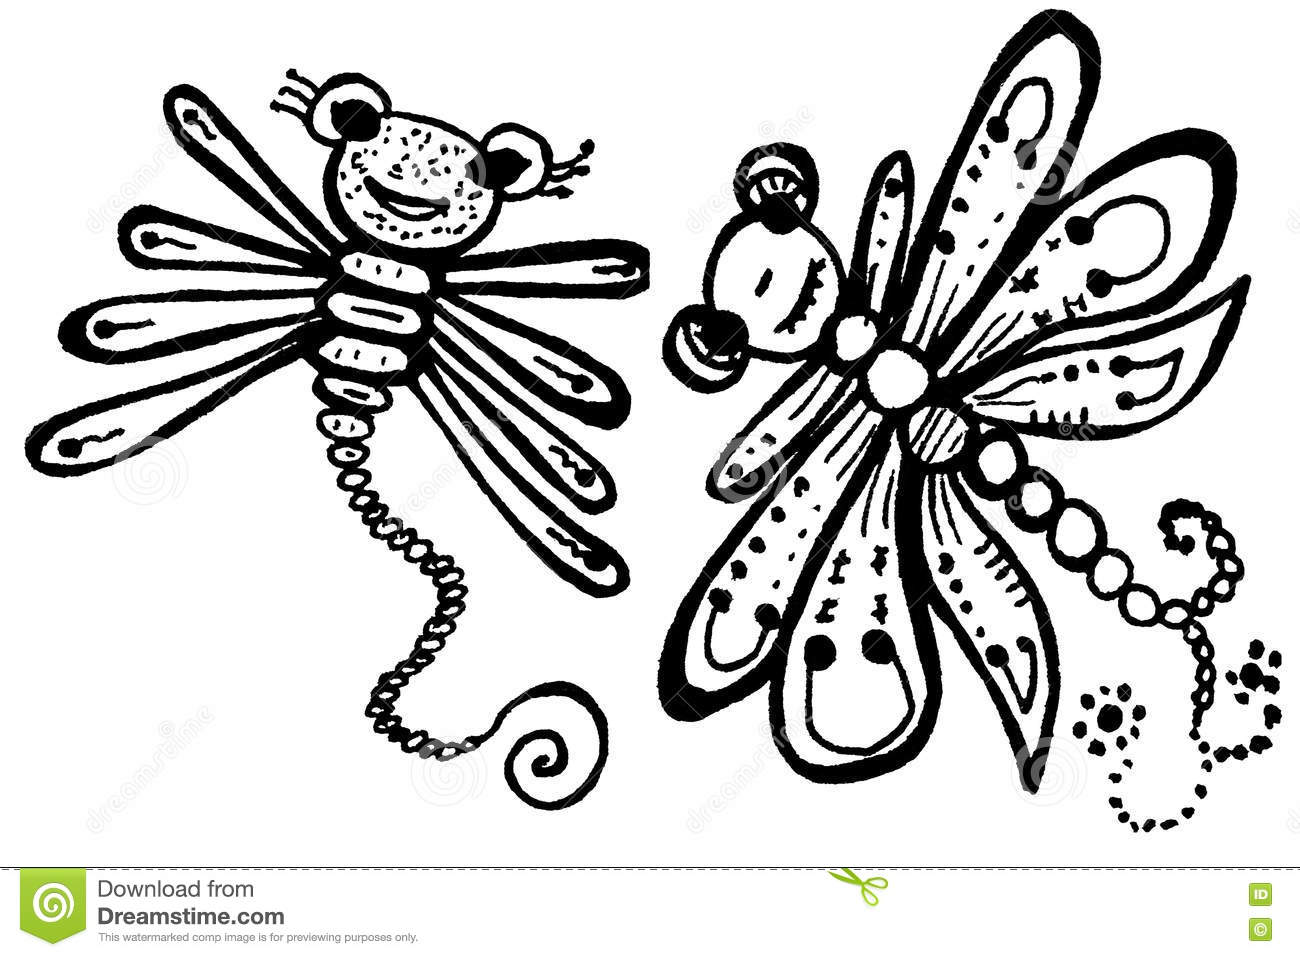 Stylized dragonflies unique drawings and sketches